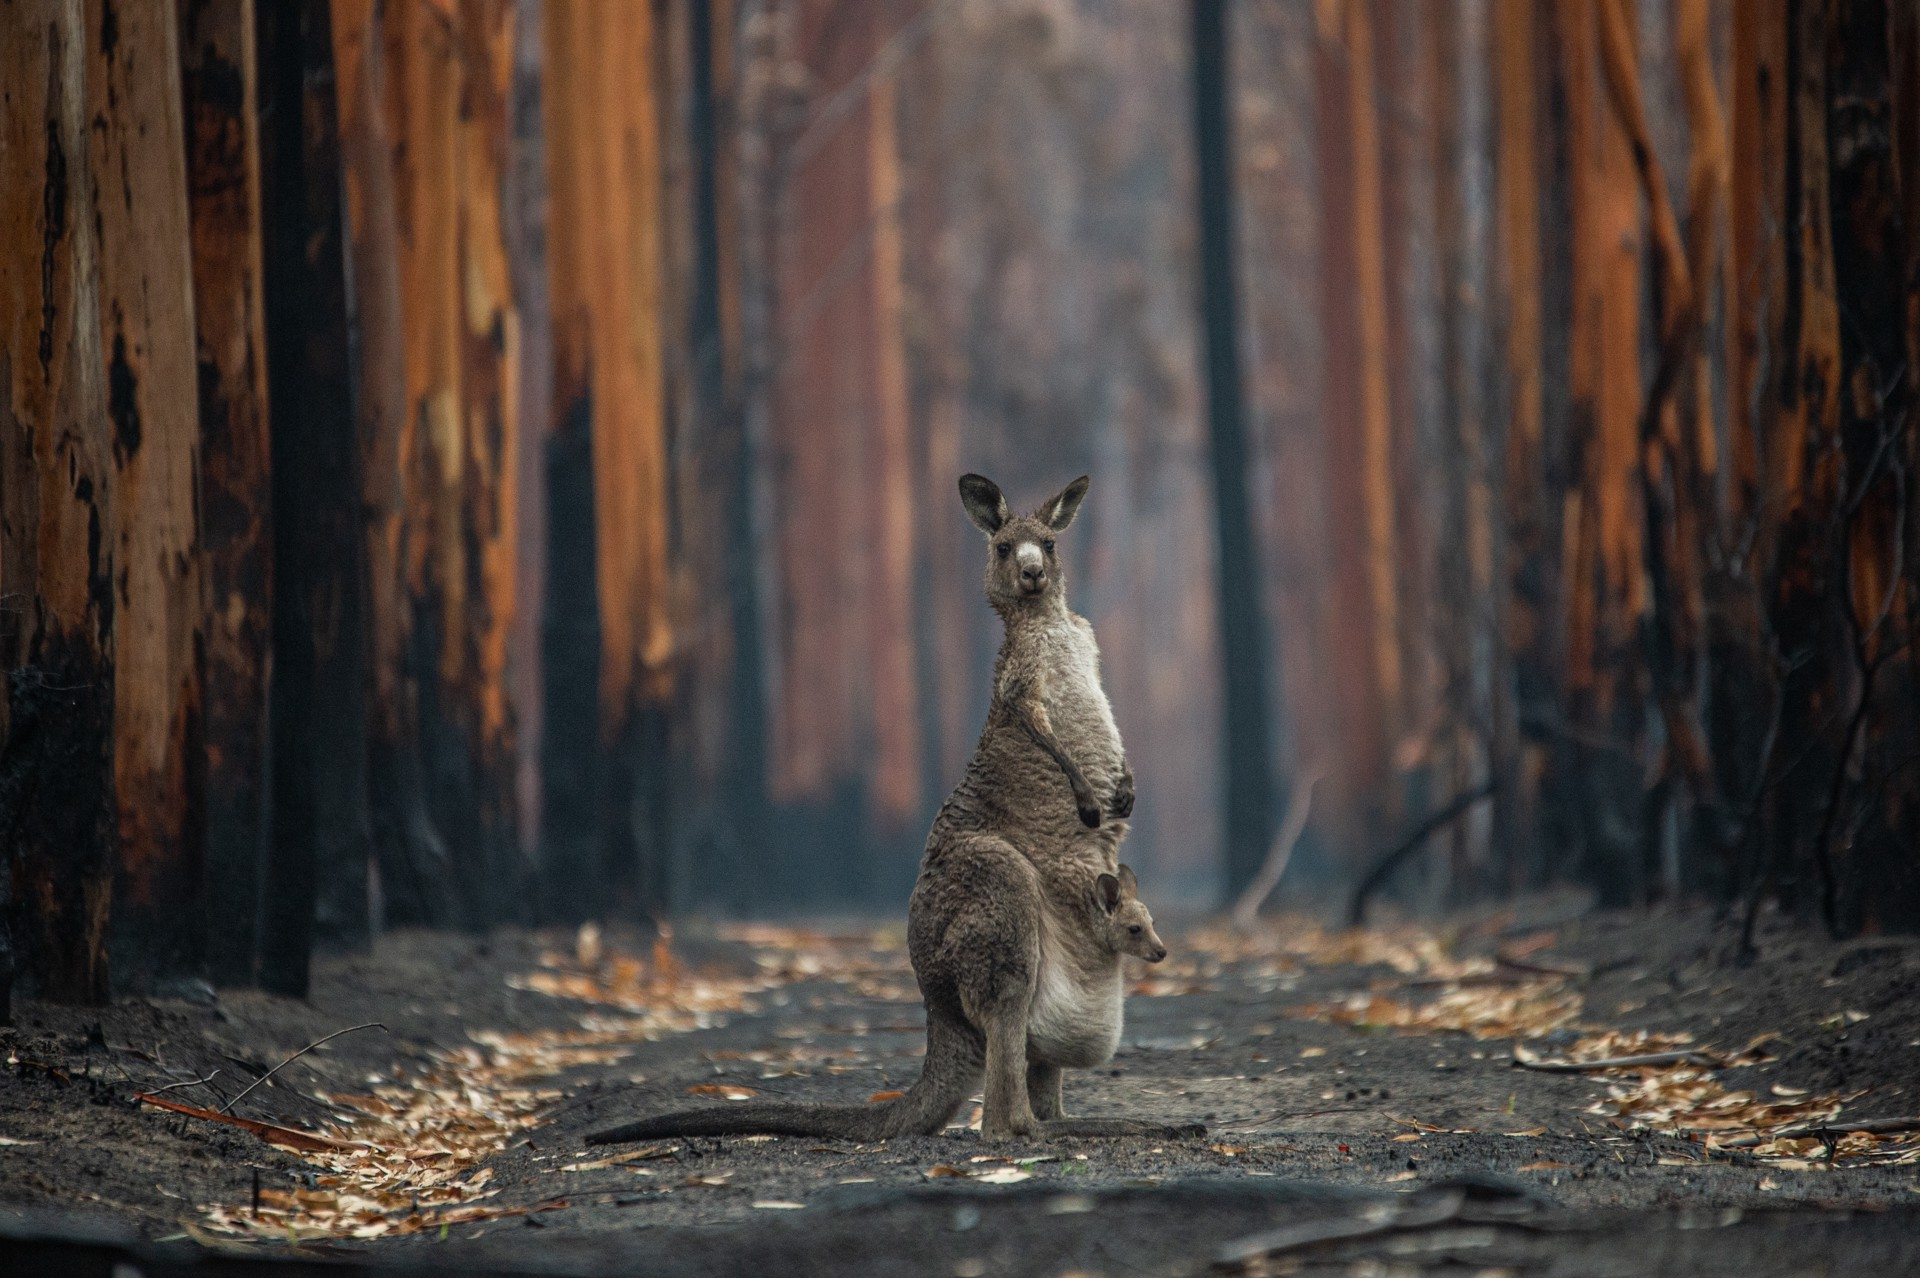 A kangaroo and her joey stand on a path in the middle of a burned forest.